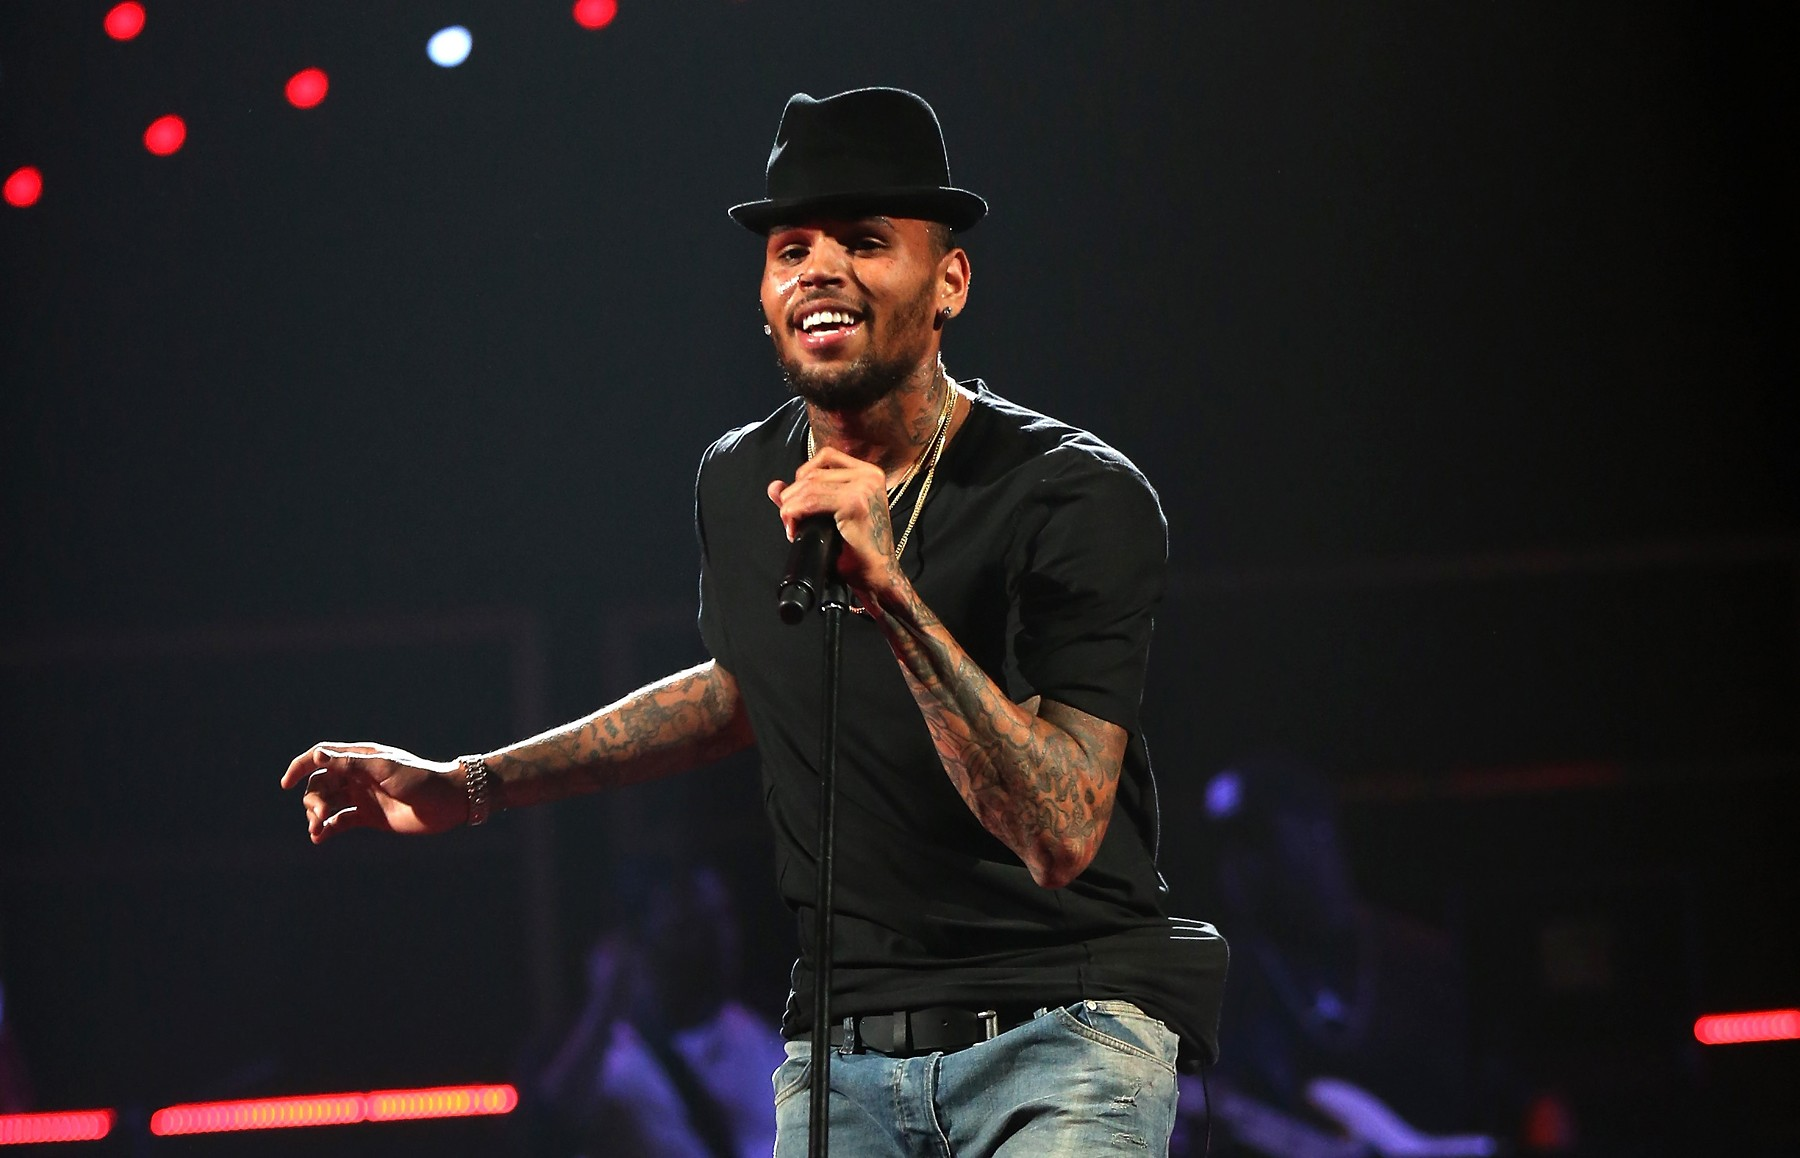 Chris-Brown-Tumblr-pictures